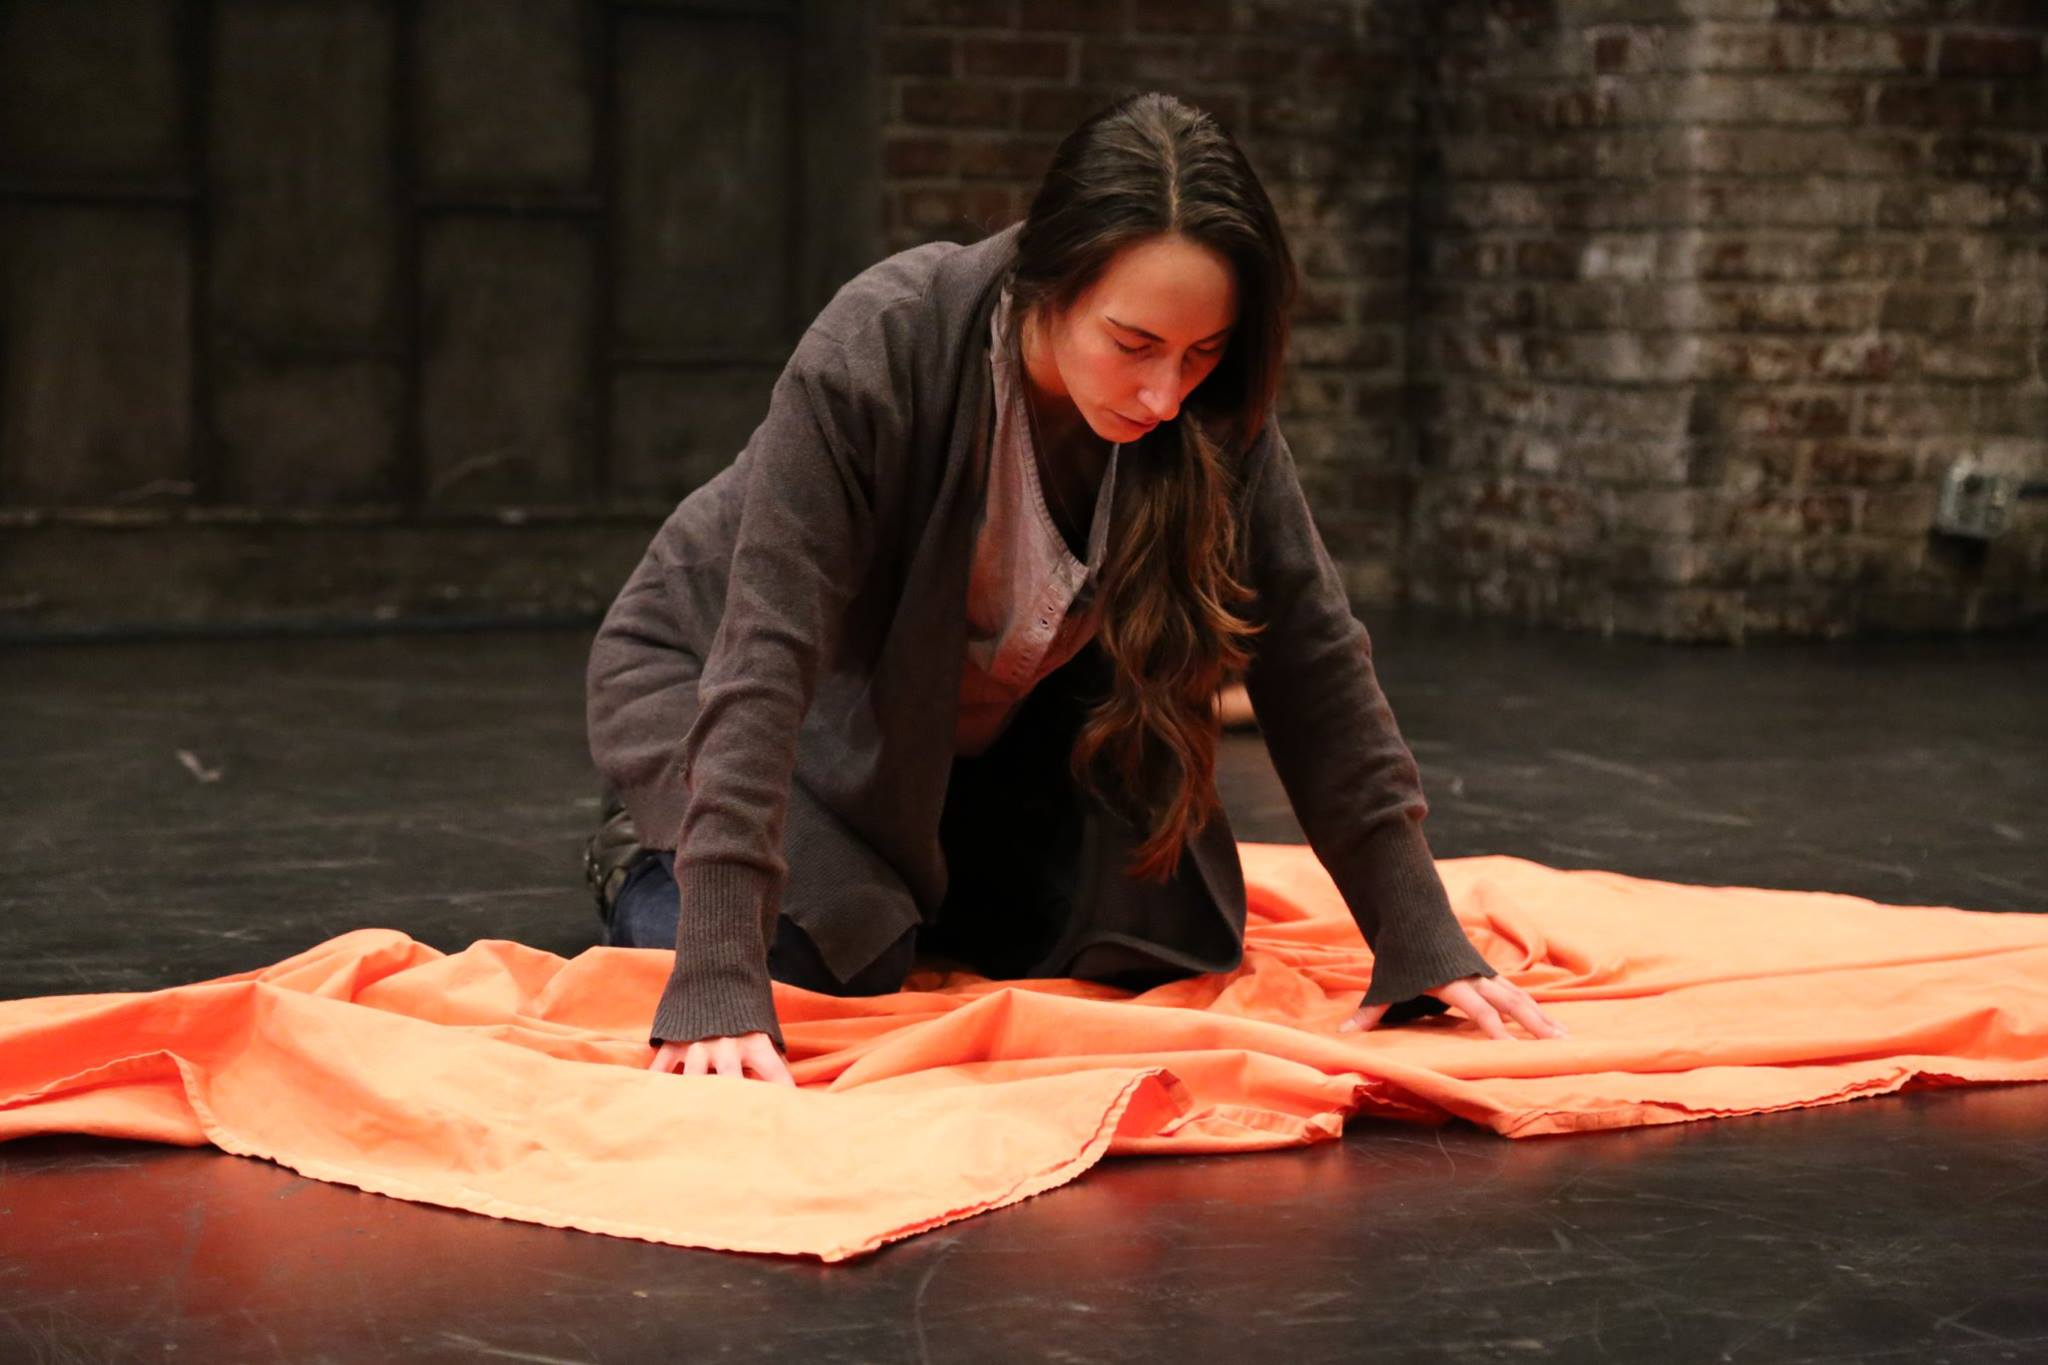 THE MOMENT BEFORE IT ALL WENT WRONG - Diana Benigno as Viveka<br>Directed by Sam Buggeln - photo by Esther Ko